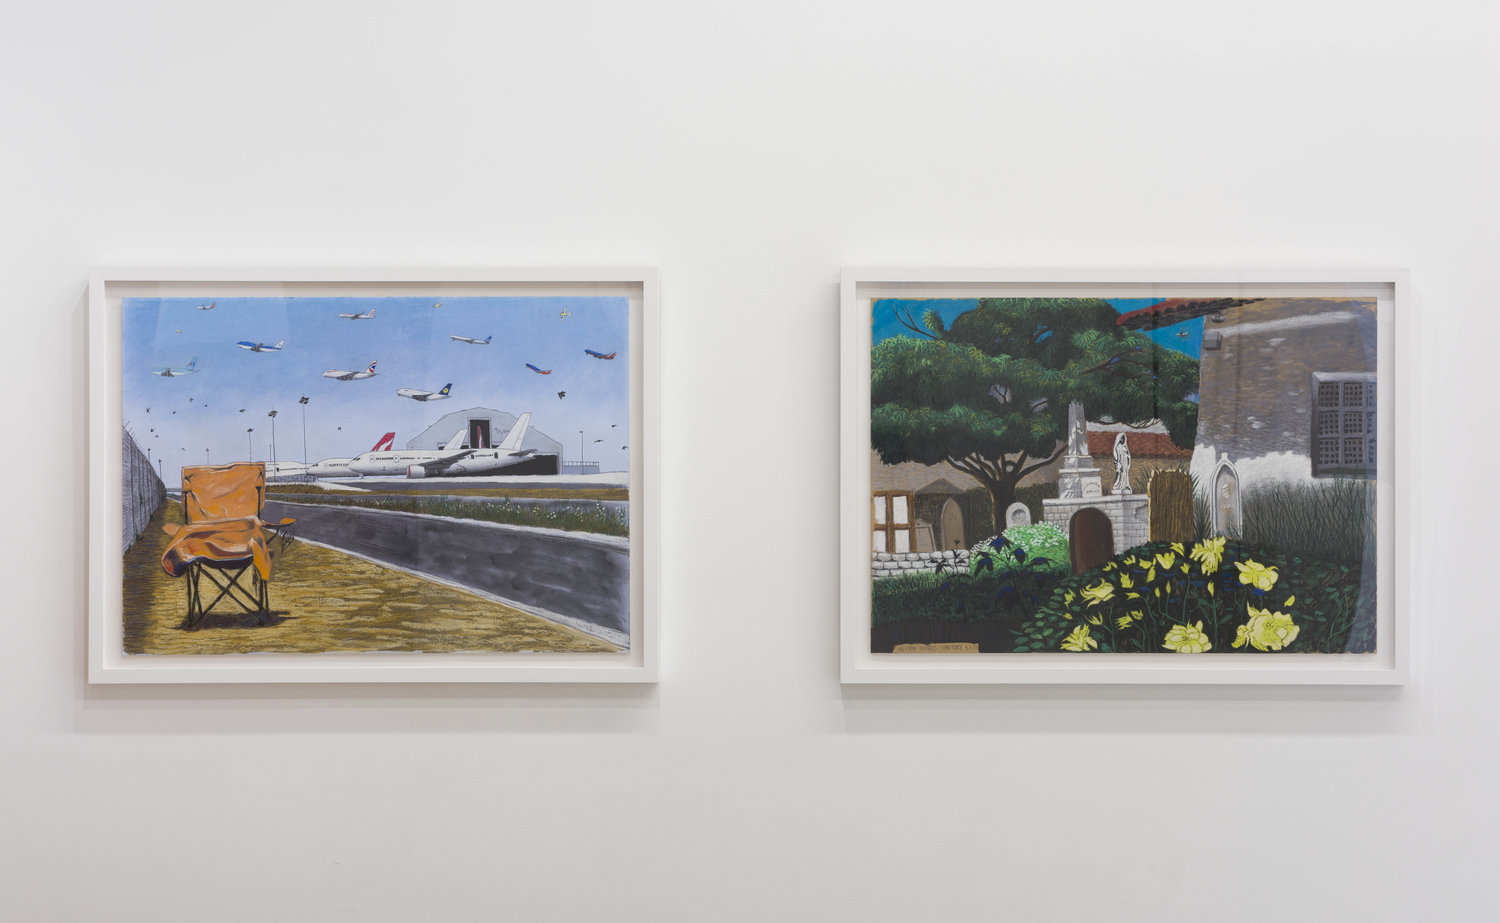 Cole Case,'LAX Qantas Hangar and Chair Looking Due North', 2017, Pastel on paper 19 × 27 inches and 'Mission Dolores Cemetery 5.1.17', 2017, pastel on paper 19 × 27 inches. Photo: Ruben Diaz.